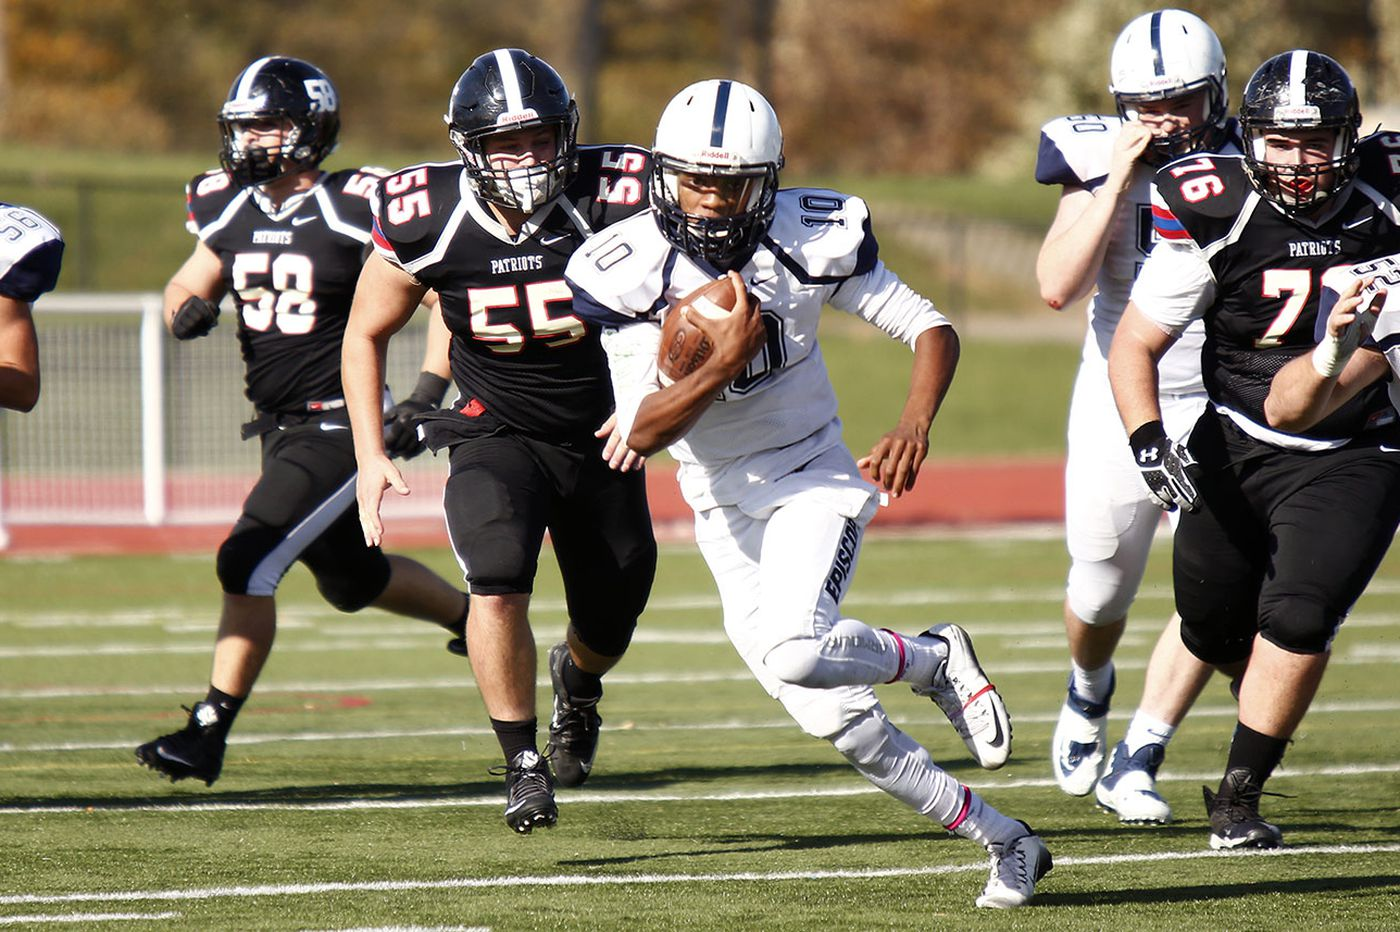 Saturday's Southeastern Pa. roundup: Marcus McDaniel's four touchdowns power Episcopal football past Brooklyn Poly Prep